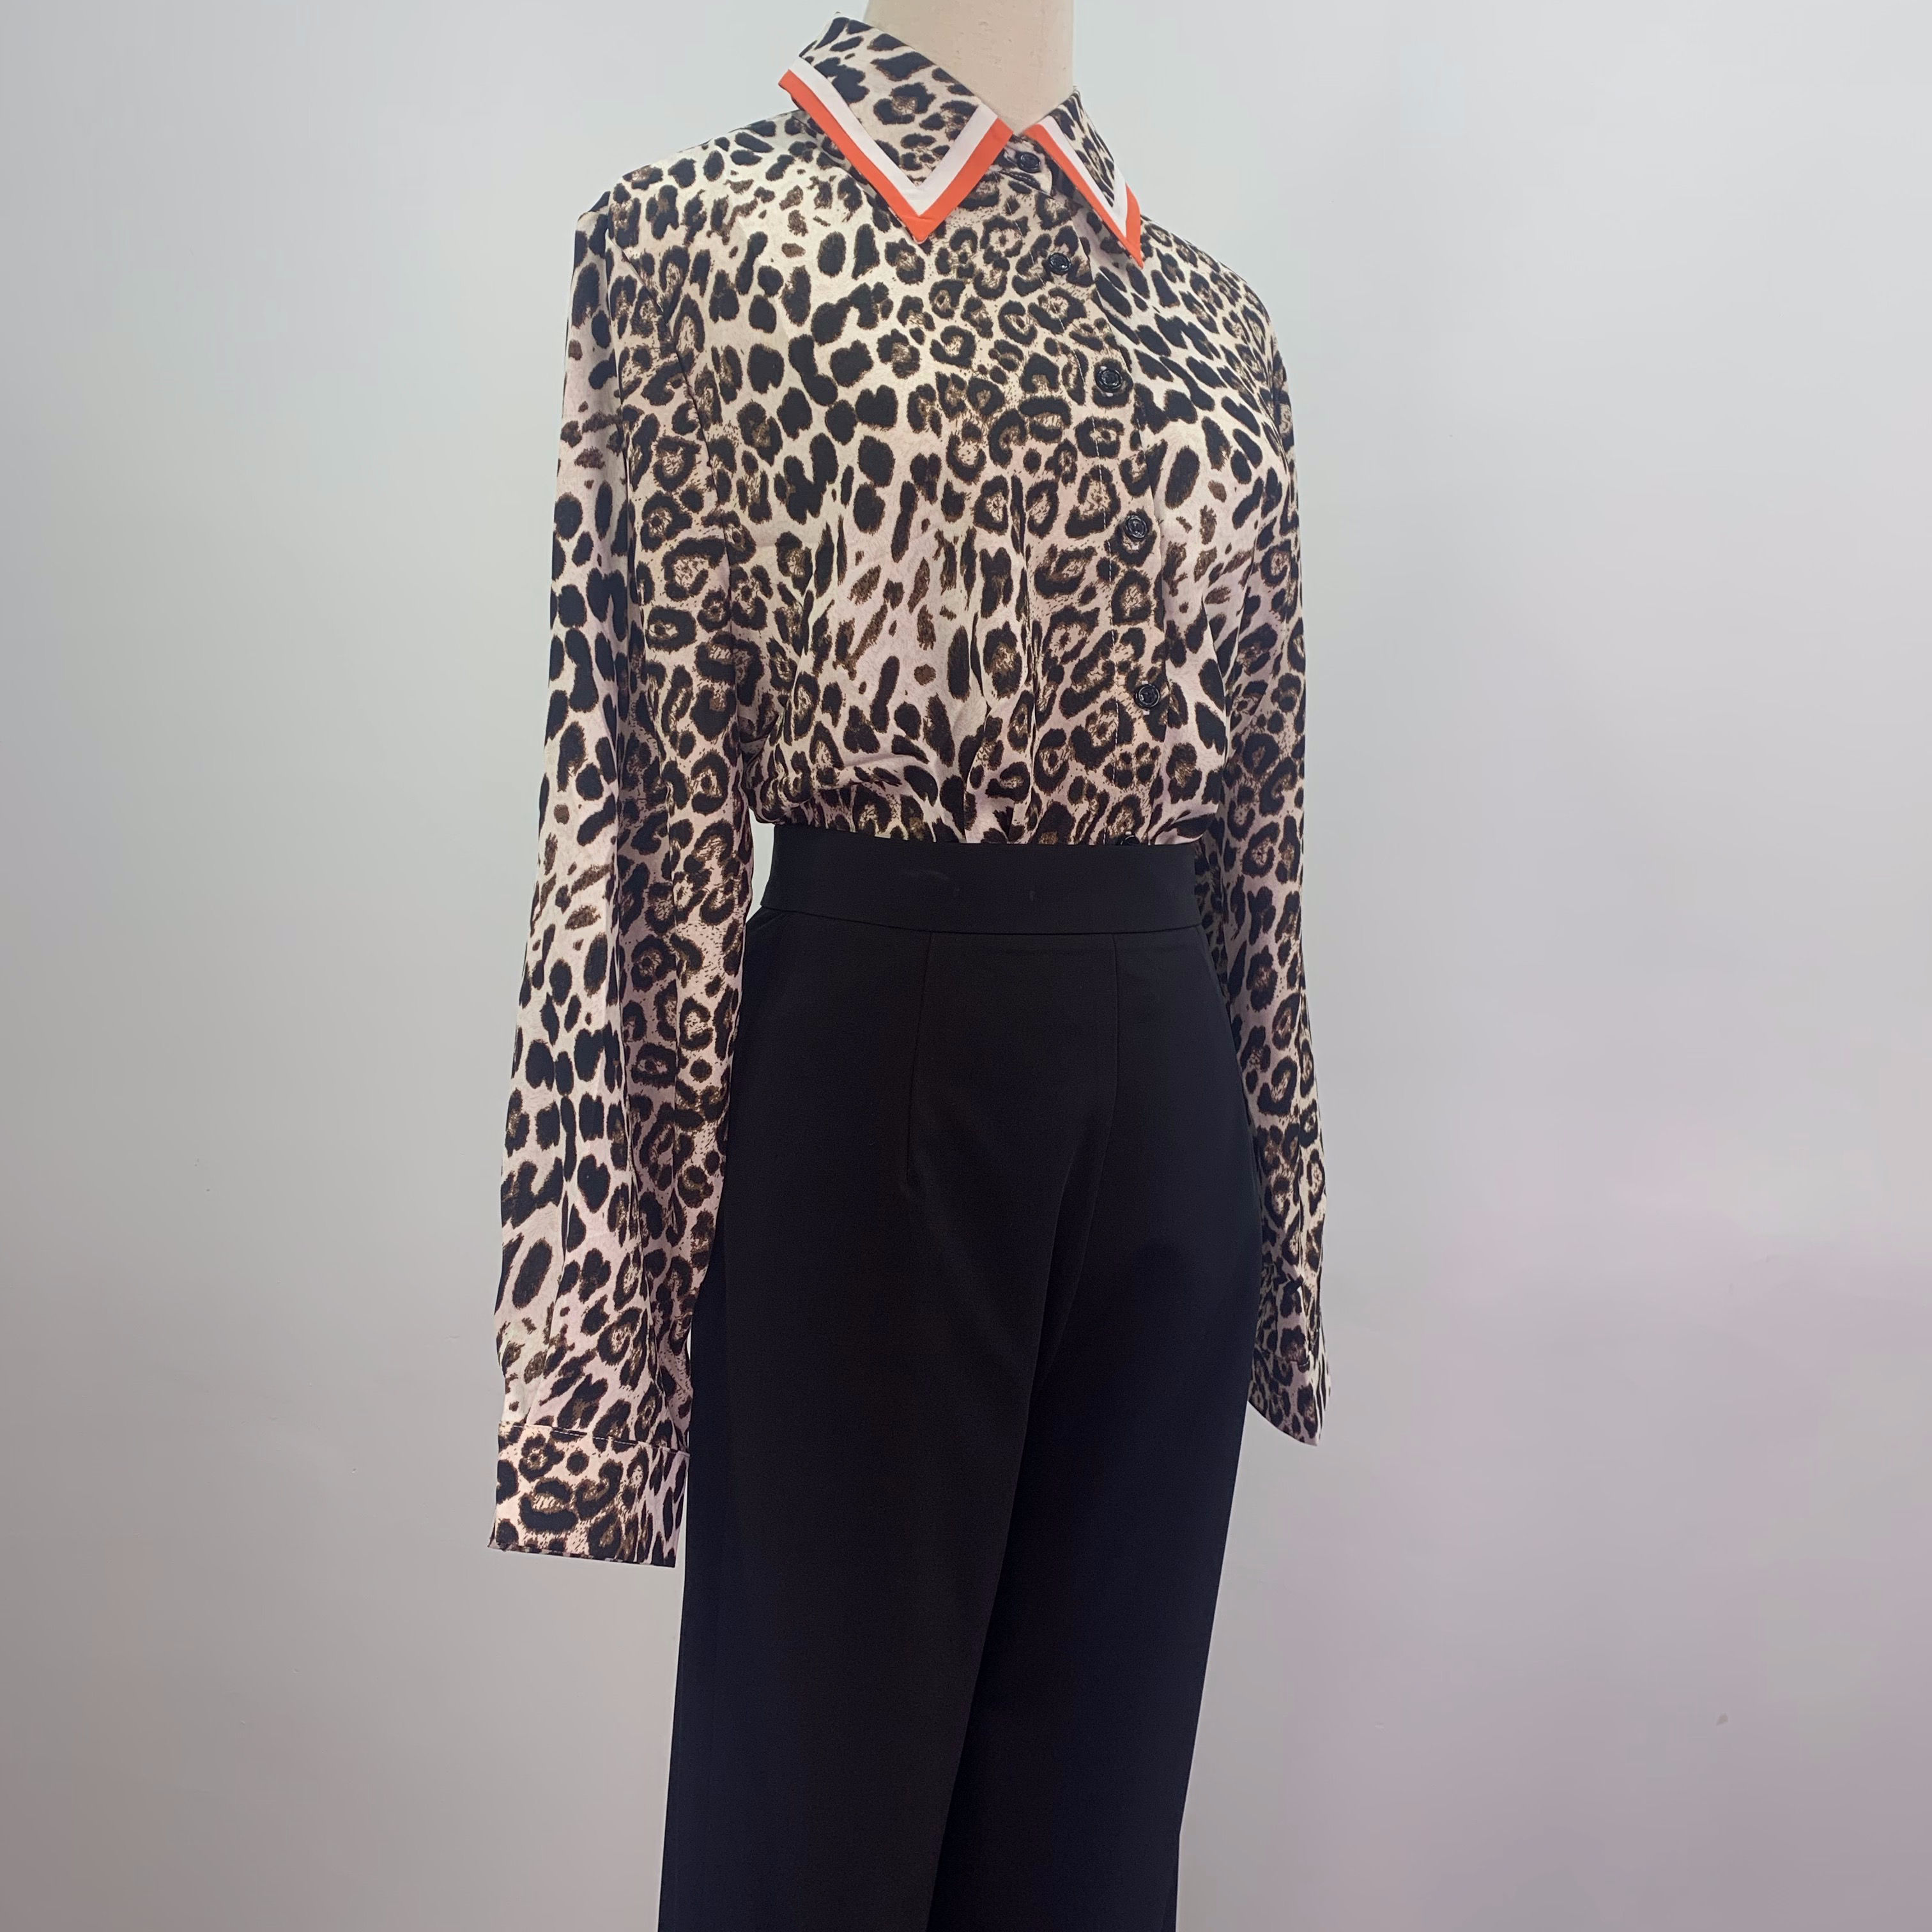 Spring 2020 women clothes new style leopard print large size fashion long sleeve women's blouse